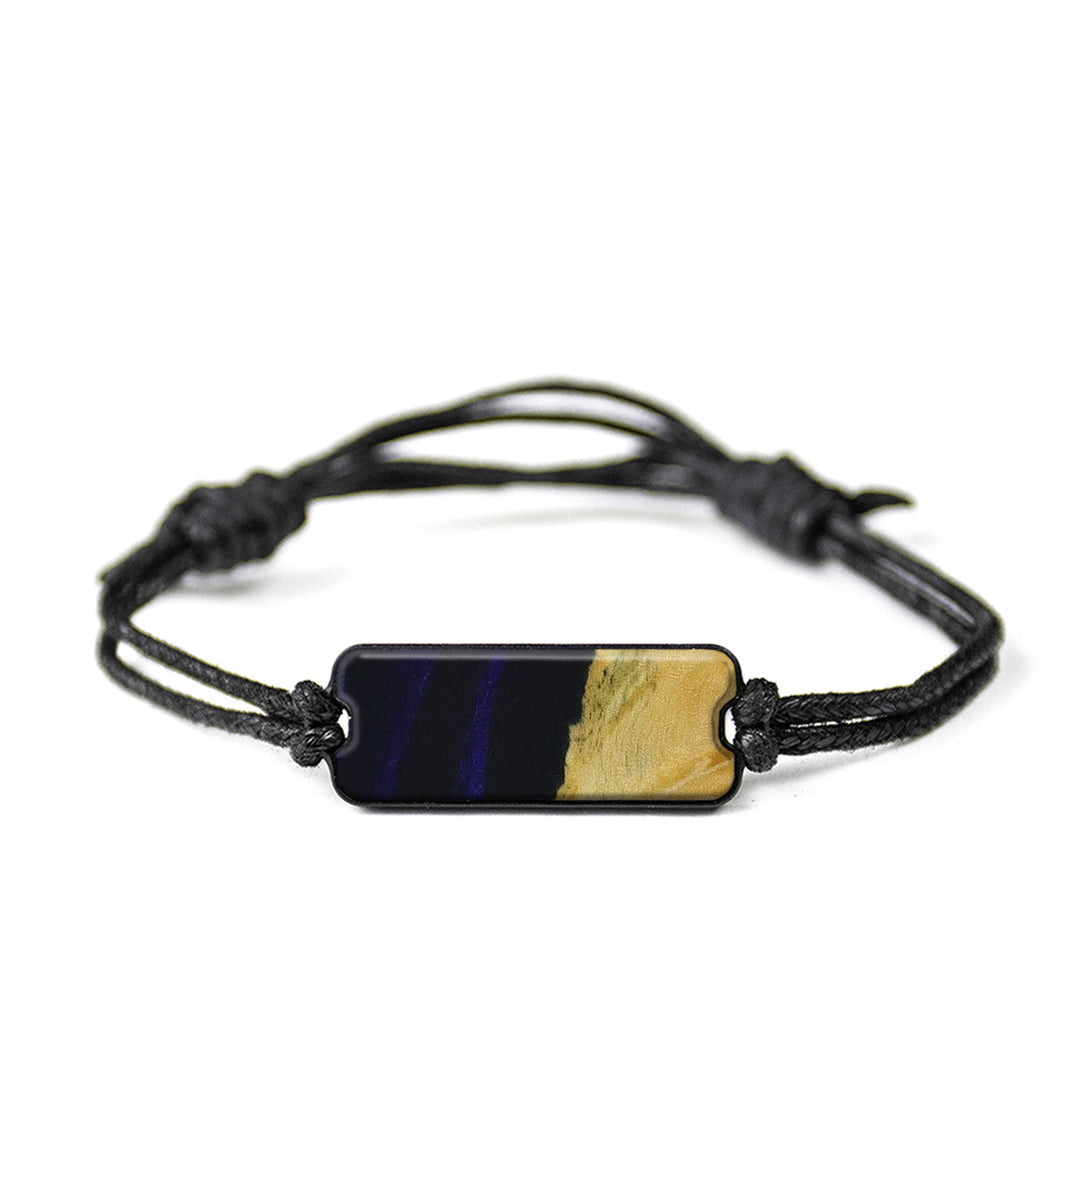 Classic Wood+Resin Bracelet - Candie (Dark Blue, 417002)